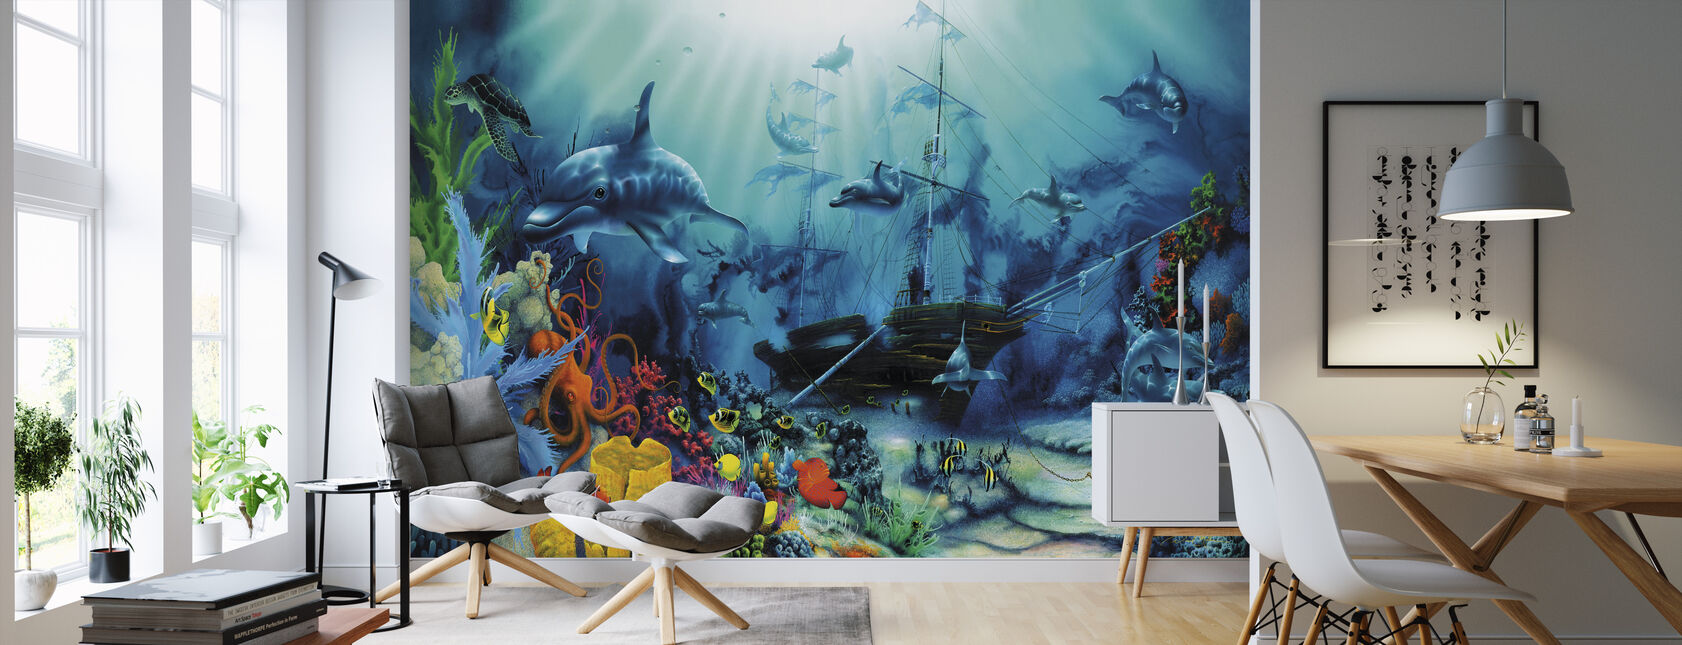 Ocean Treasures - Wallpaper - Living Room